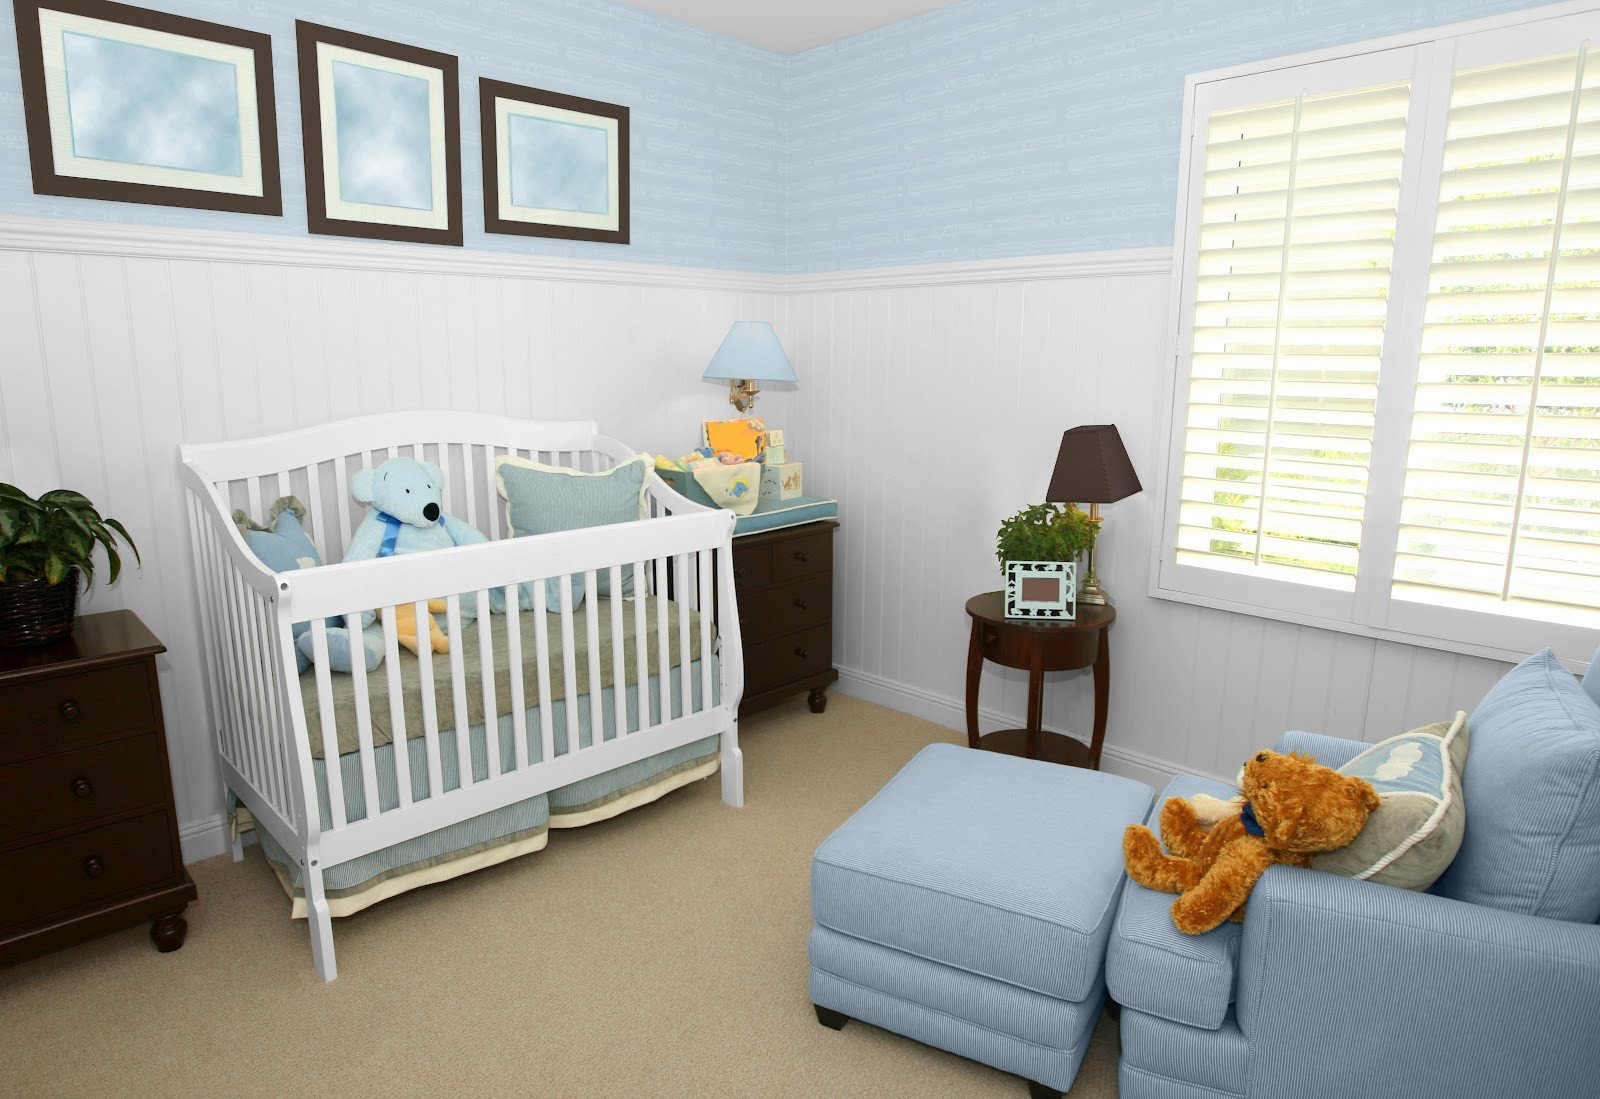 Baby Boy Room Decor Ideas Unique top 10 Baby Nursery Room Colors and Decorating Ideas